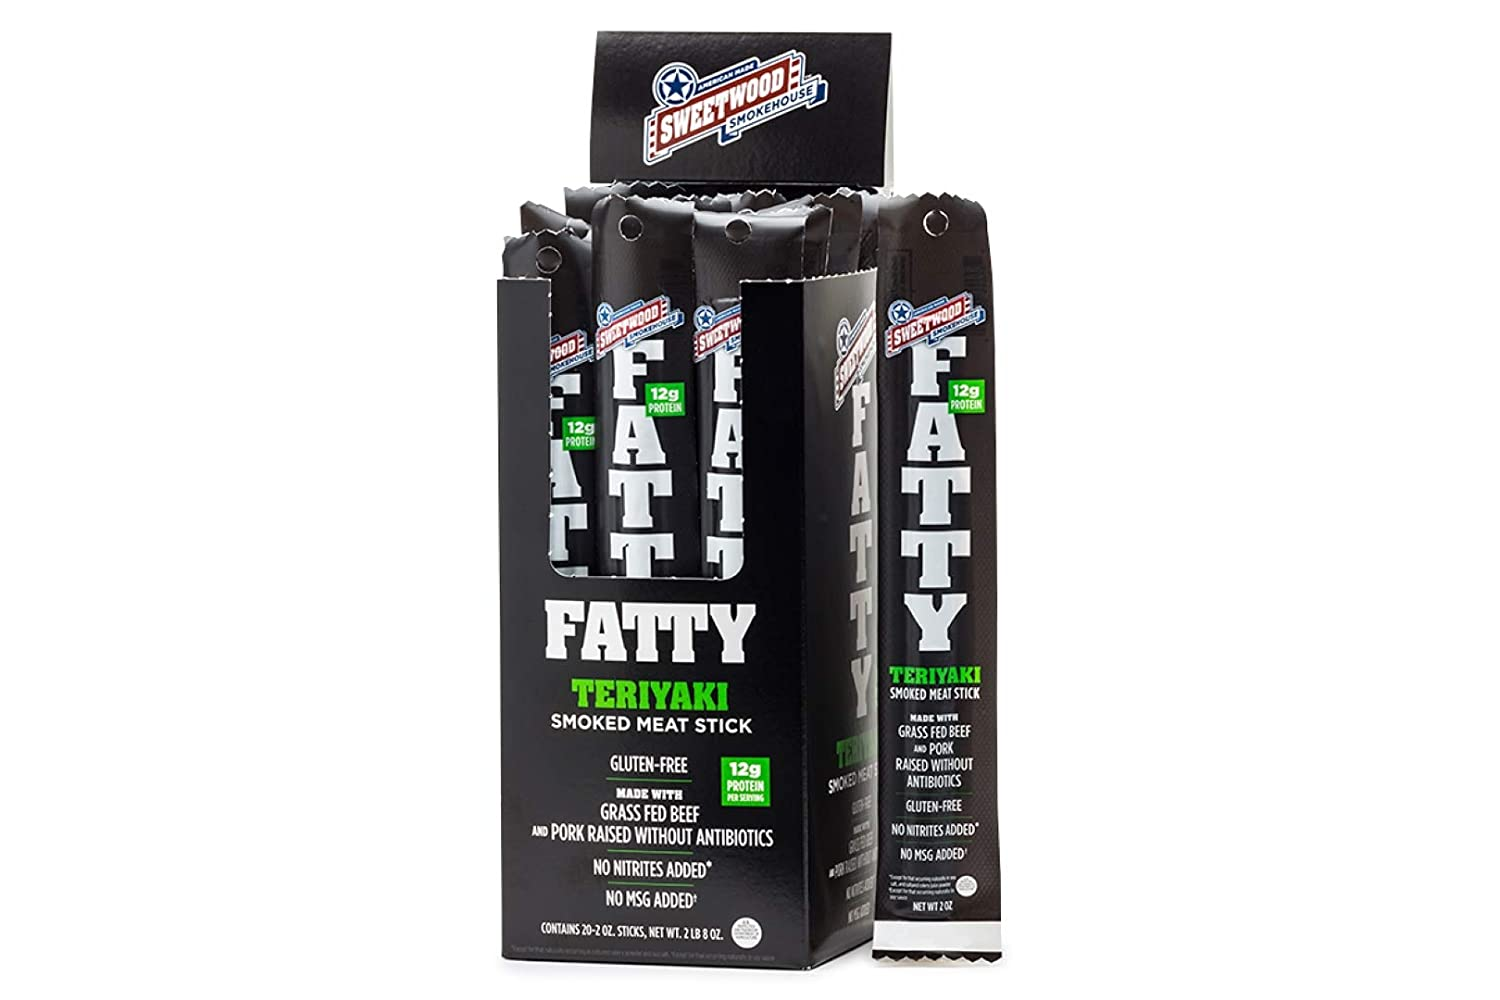 Sweetwood Smokehouse Fatty Meat Stick | Teriyaki Flavor | 20 Pack | 2 oz Sticks | USA Grass Fed Beef, Antibiotic Free Pork | Paleo, Gluten Free, Slow Smoked Meat Snack | No Nitrites or Added MSG